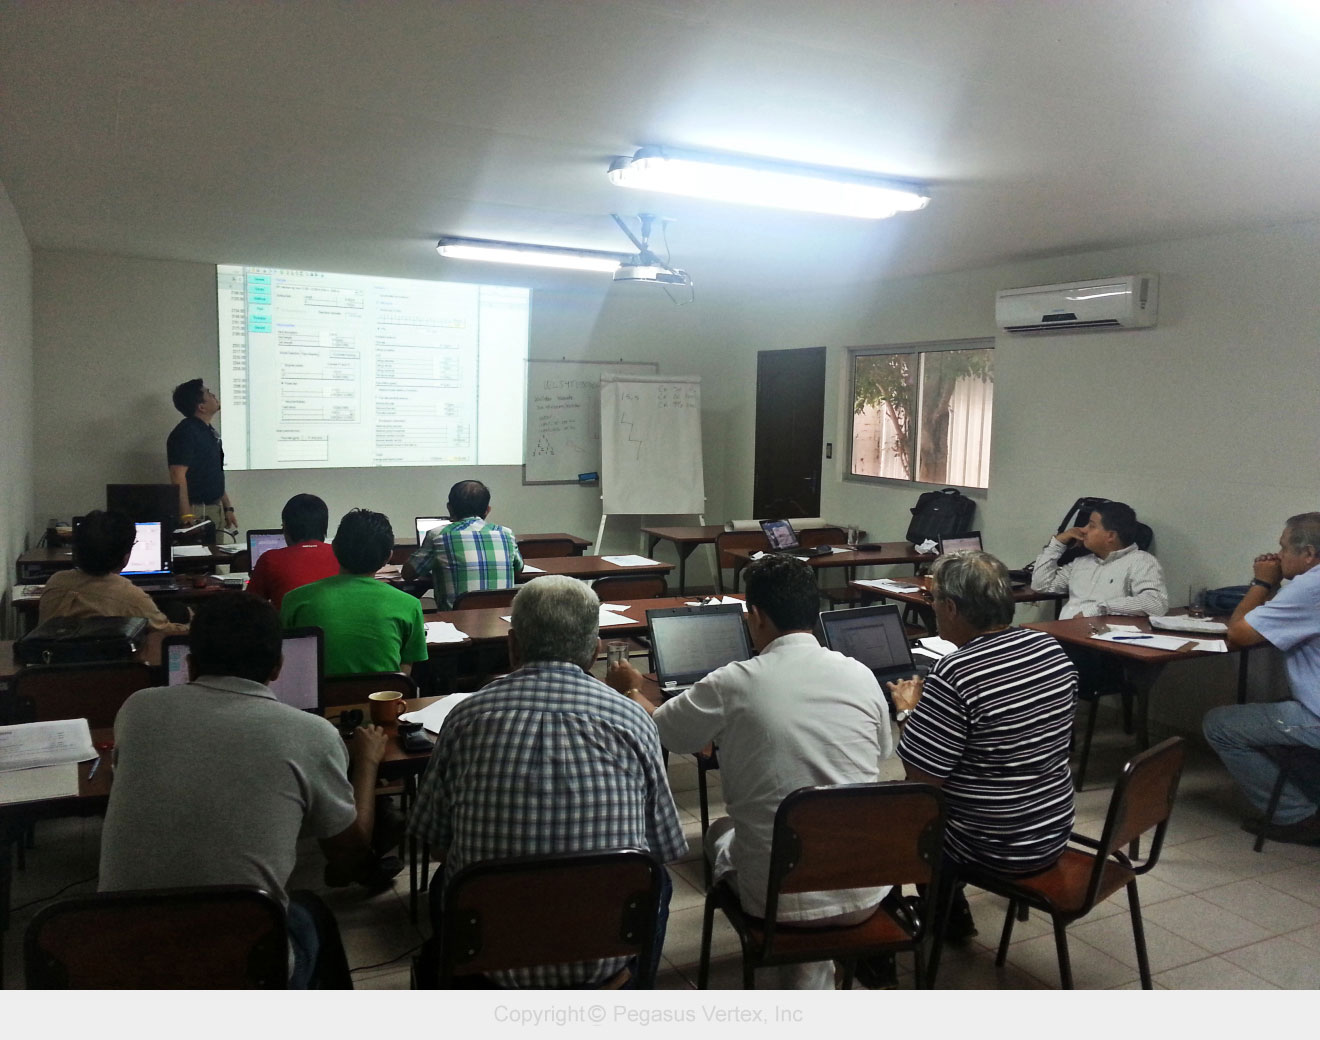 Drilling_Hydraulics_software_training_in_bolivia_Pegasus_Vertex_Inc